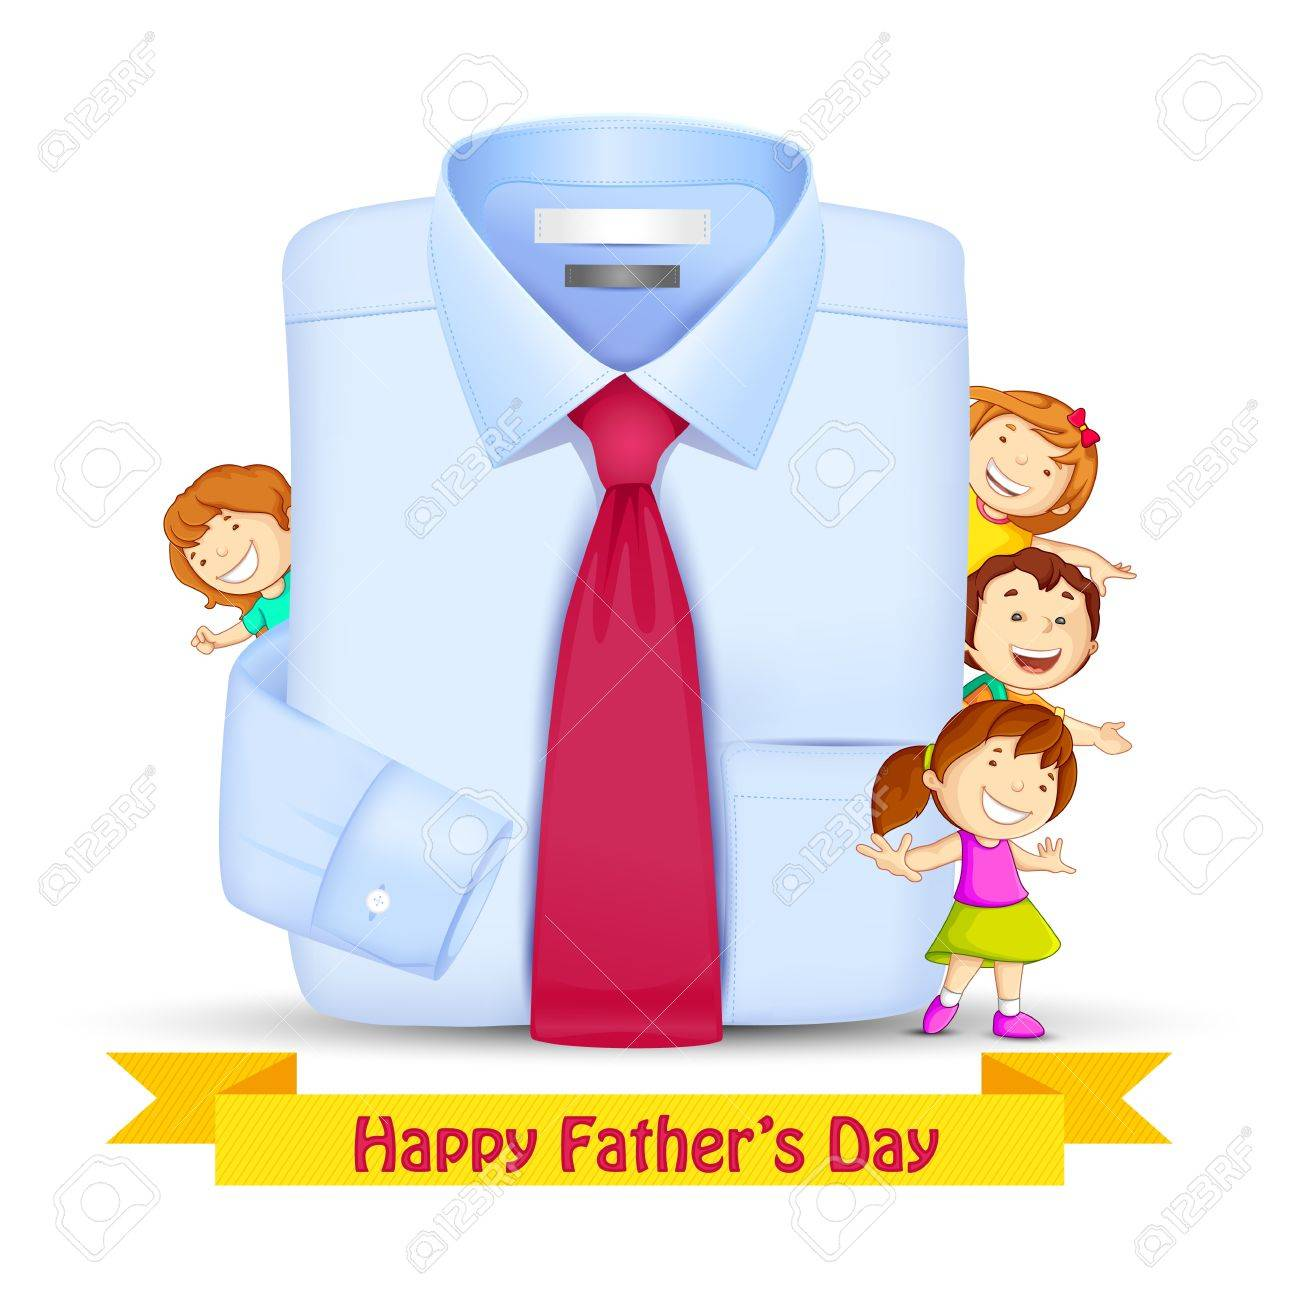 Father s Day Background with Kids Stock Vector - 19869061